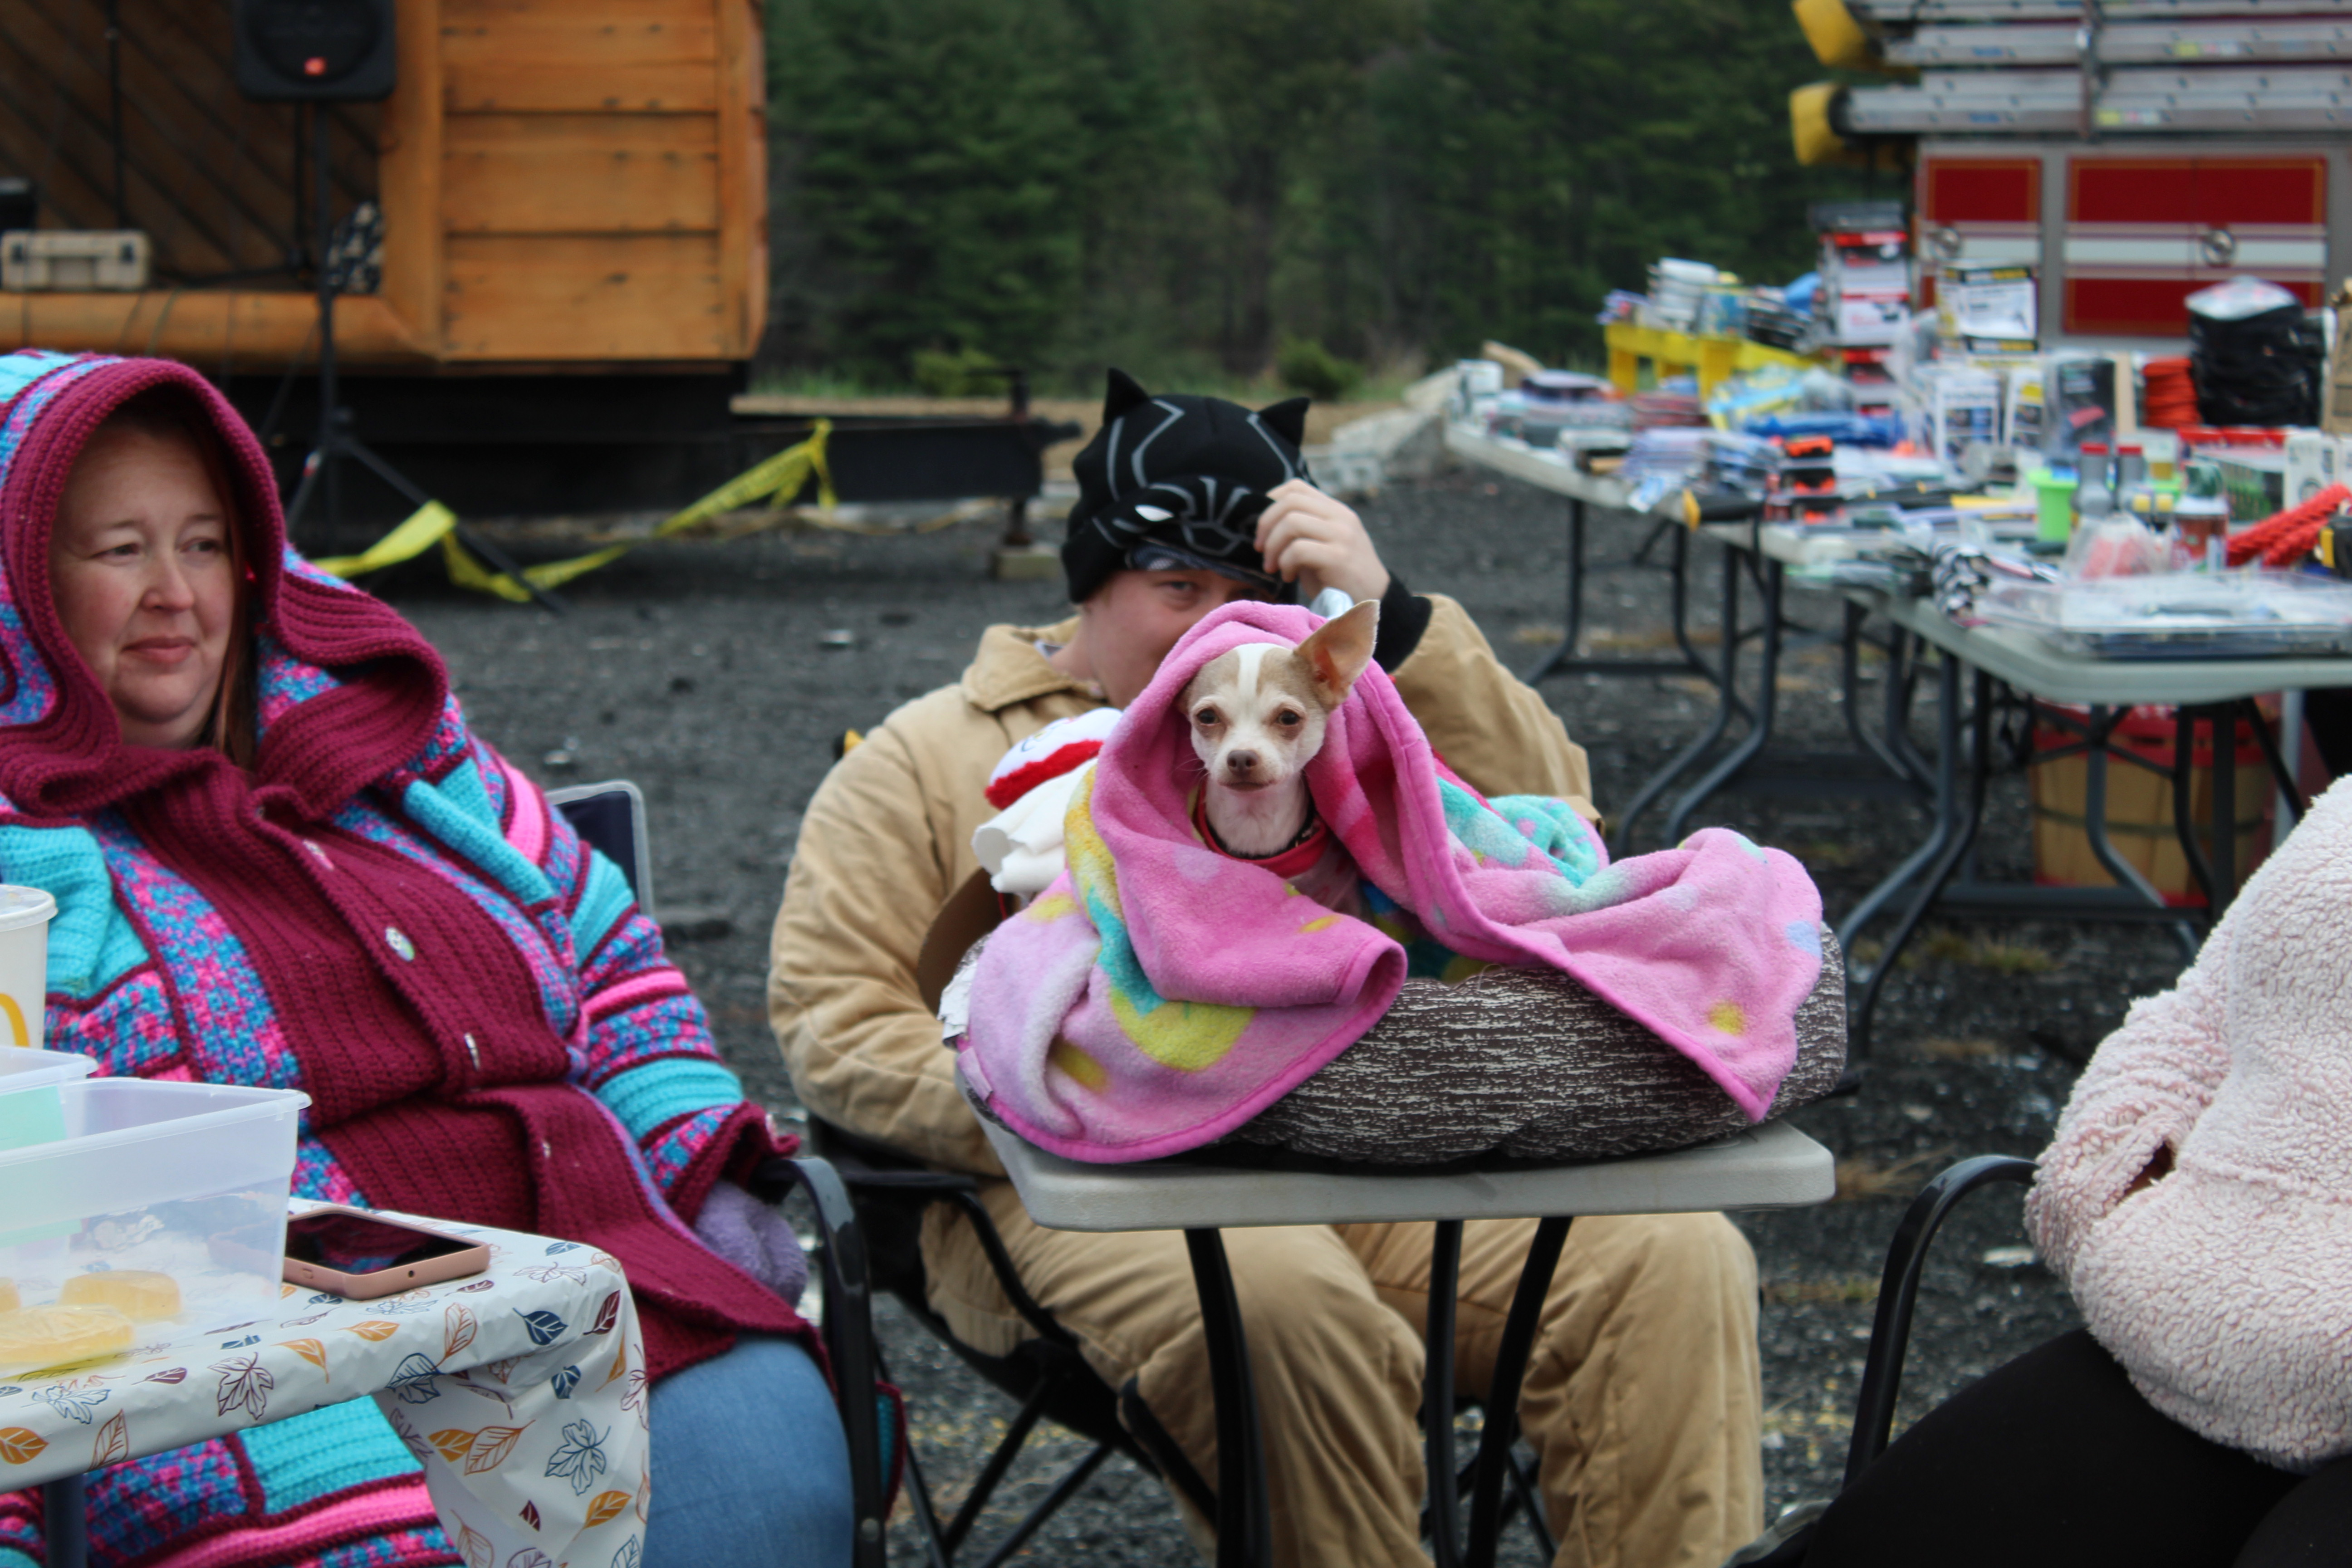 A vendor's dog snuggles up in a blanket at the Remember When Day festival on Oct. 31. The weather conditions were chilly and windy, but vendors stayed warm in coats and with heaters.(MNJ Photo/Juliana Walker)